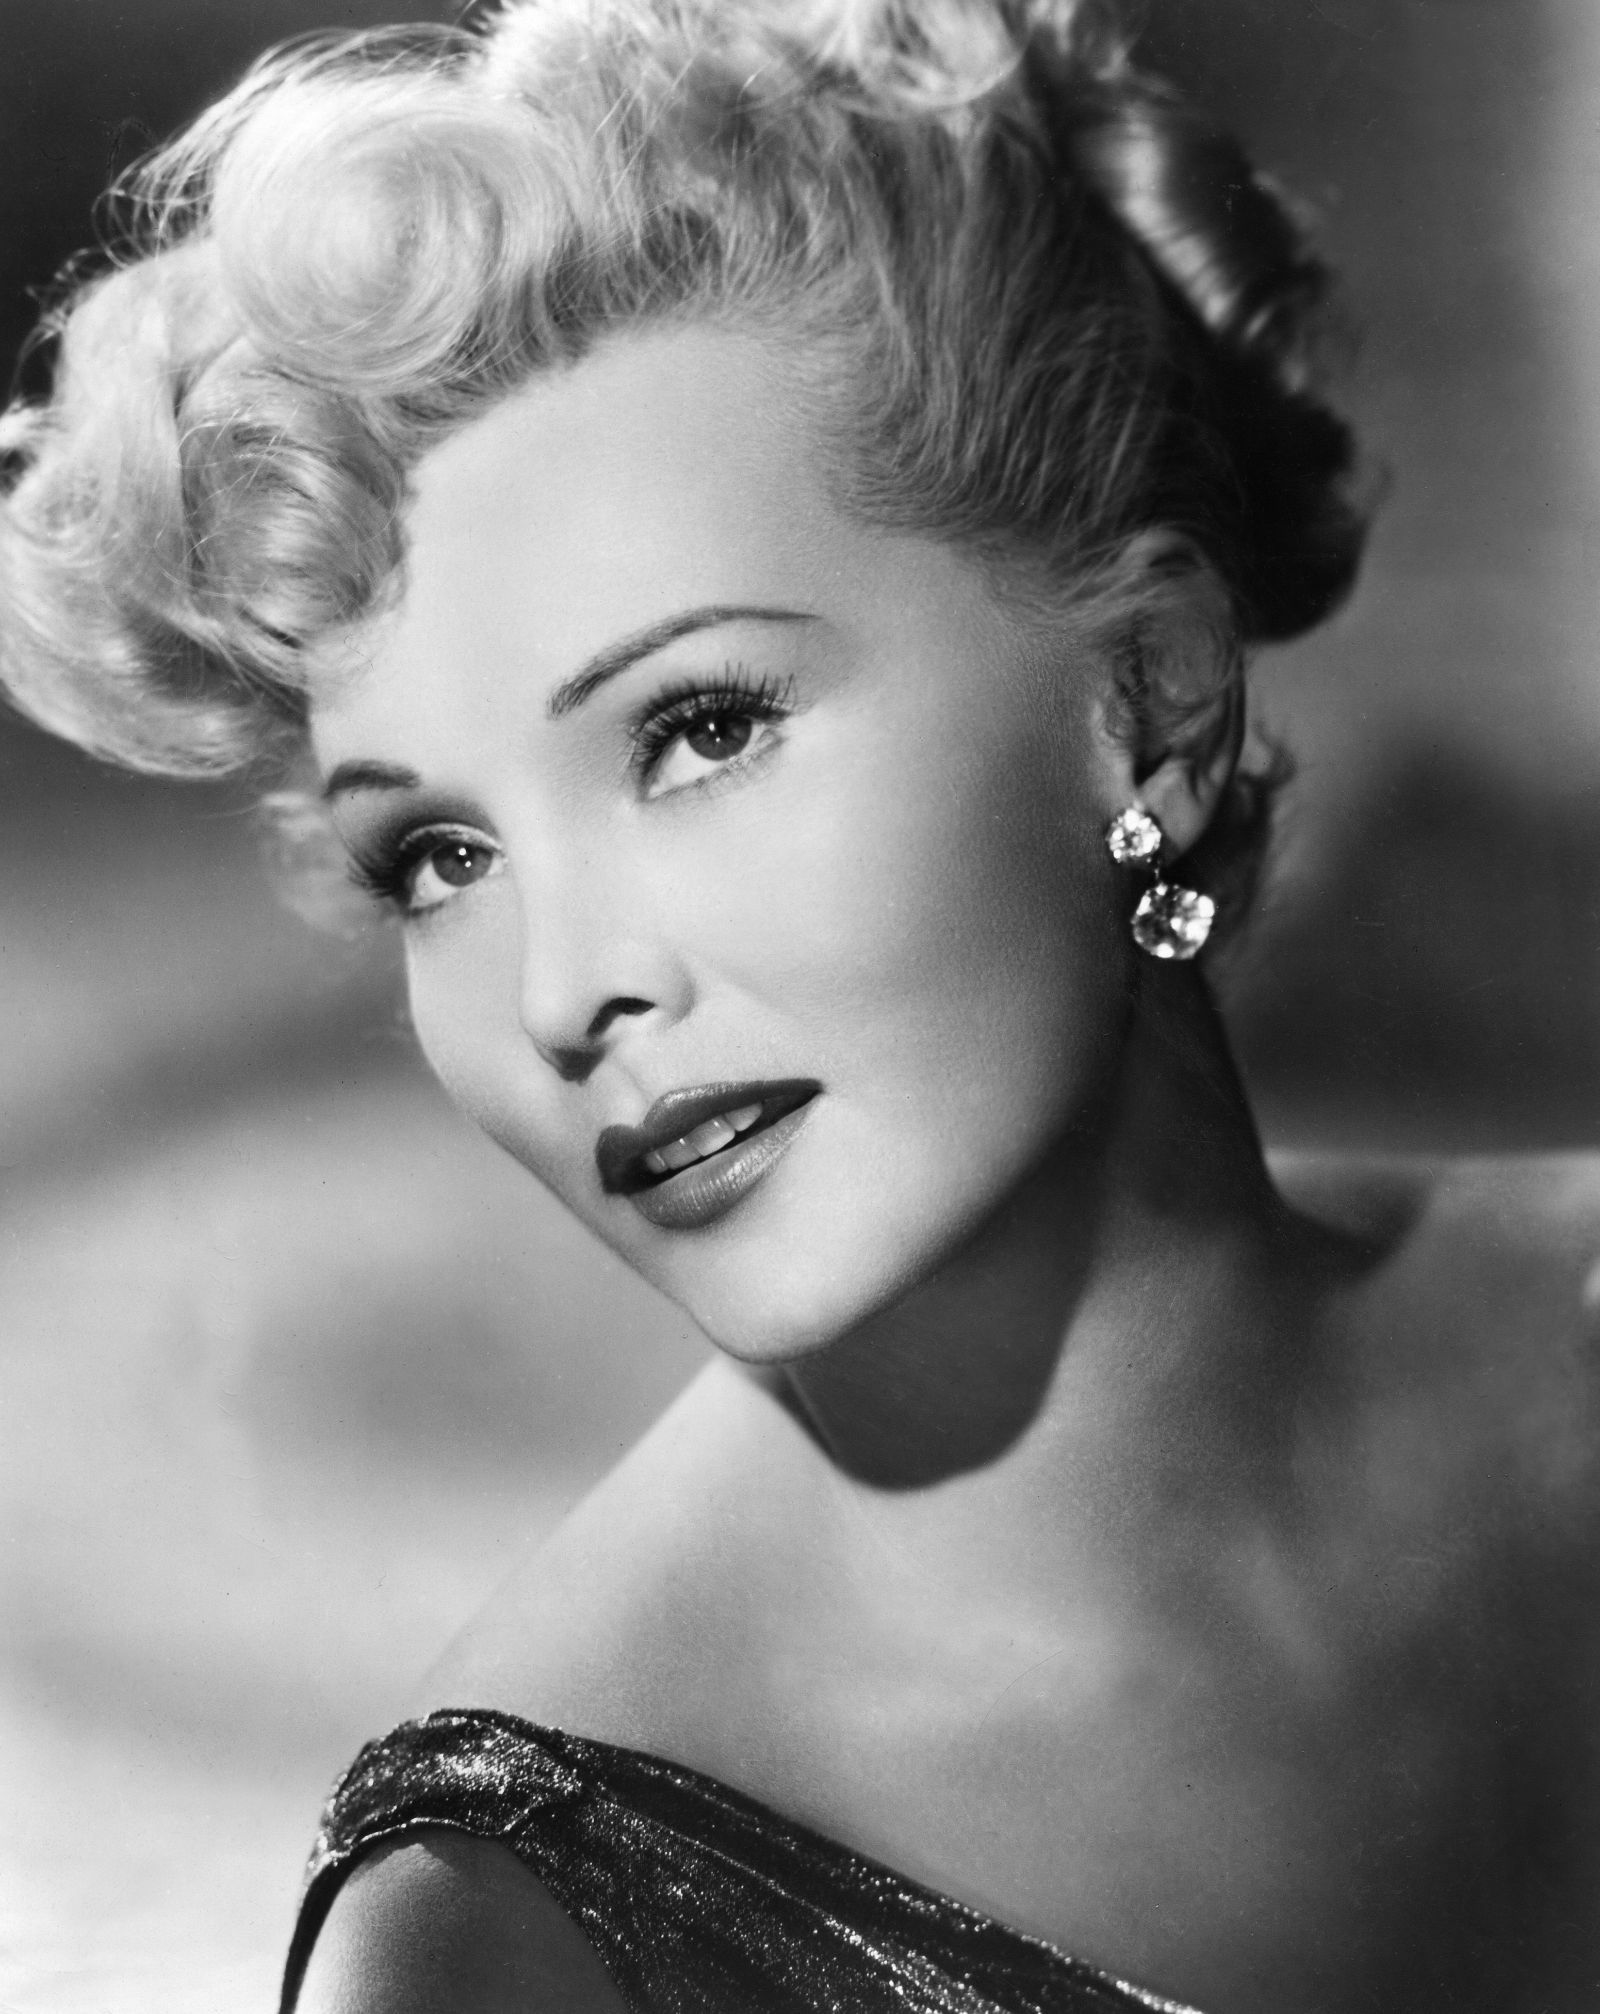 Zsa Zsa Gabor Quotes Zsa Zsa Gabor's Best Quotes Through The Years  Quotes Beauty And